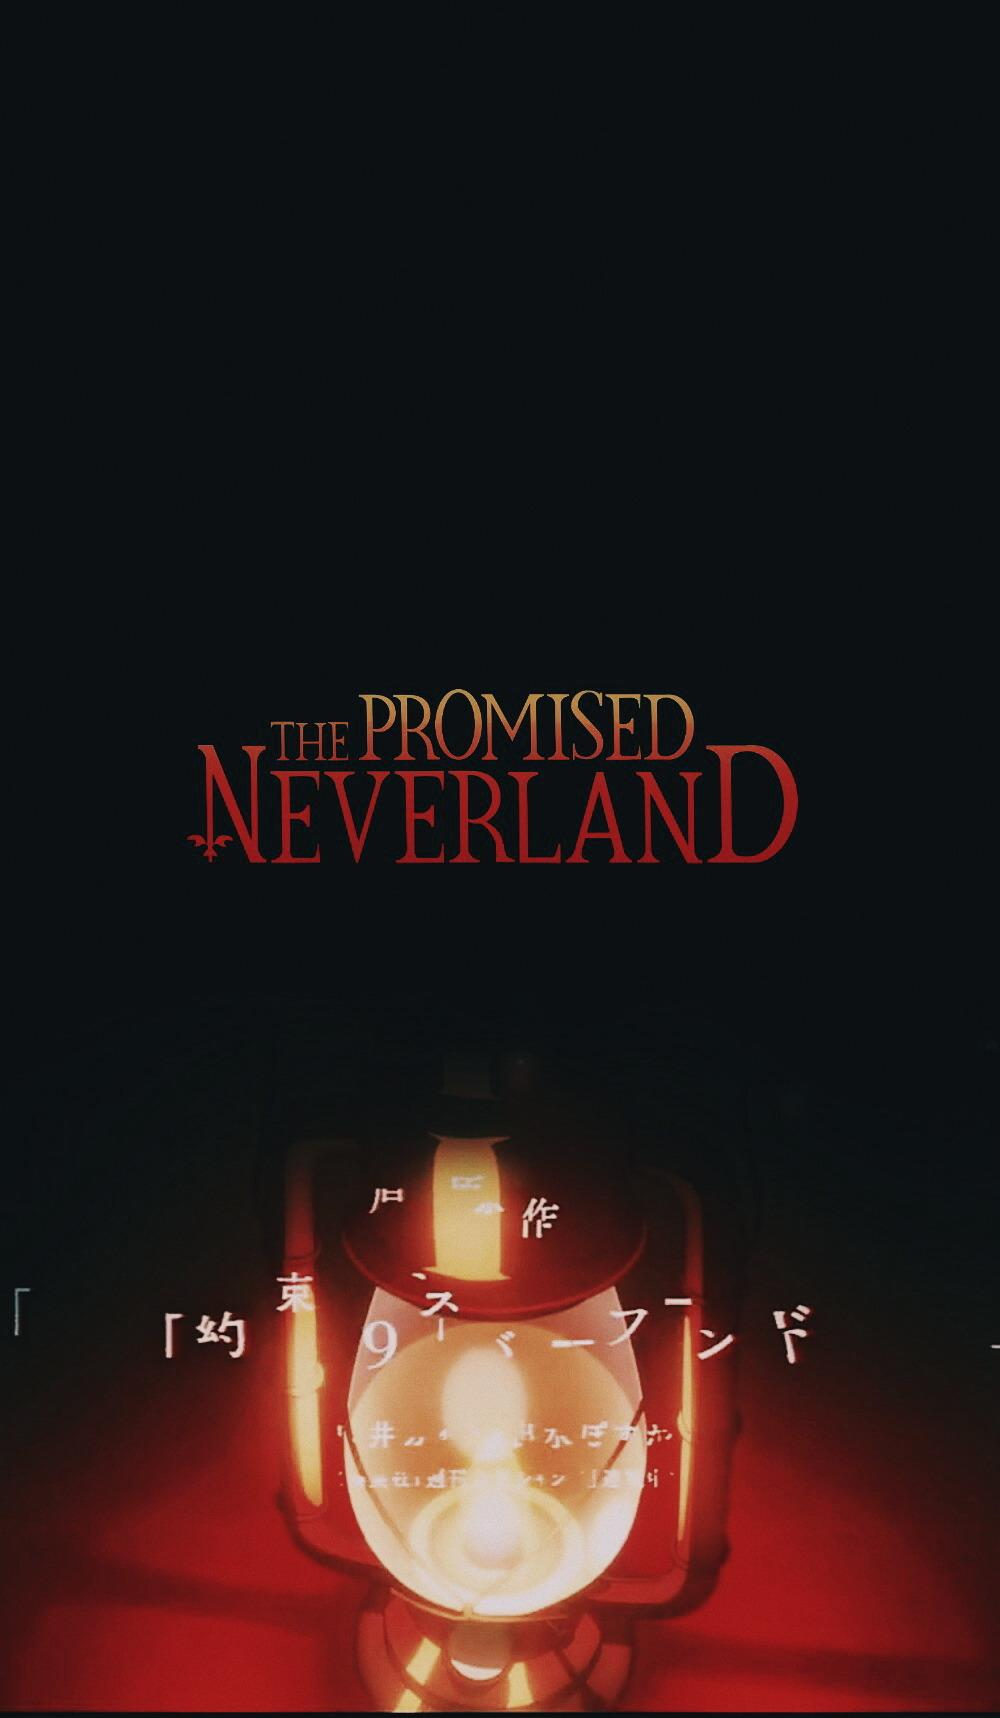 The Promised Neverland Iphone Wallpapers Wallpaper Cave